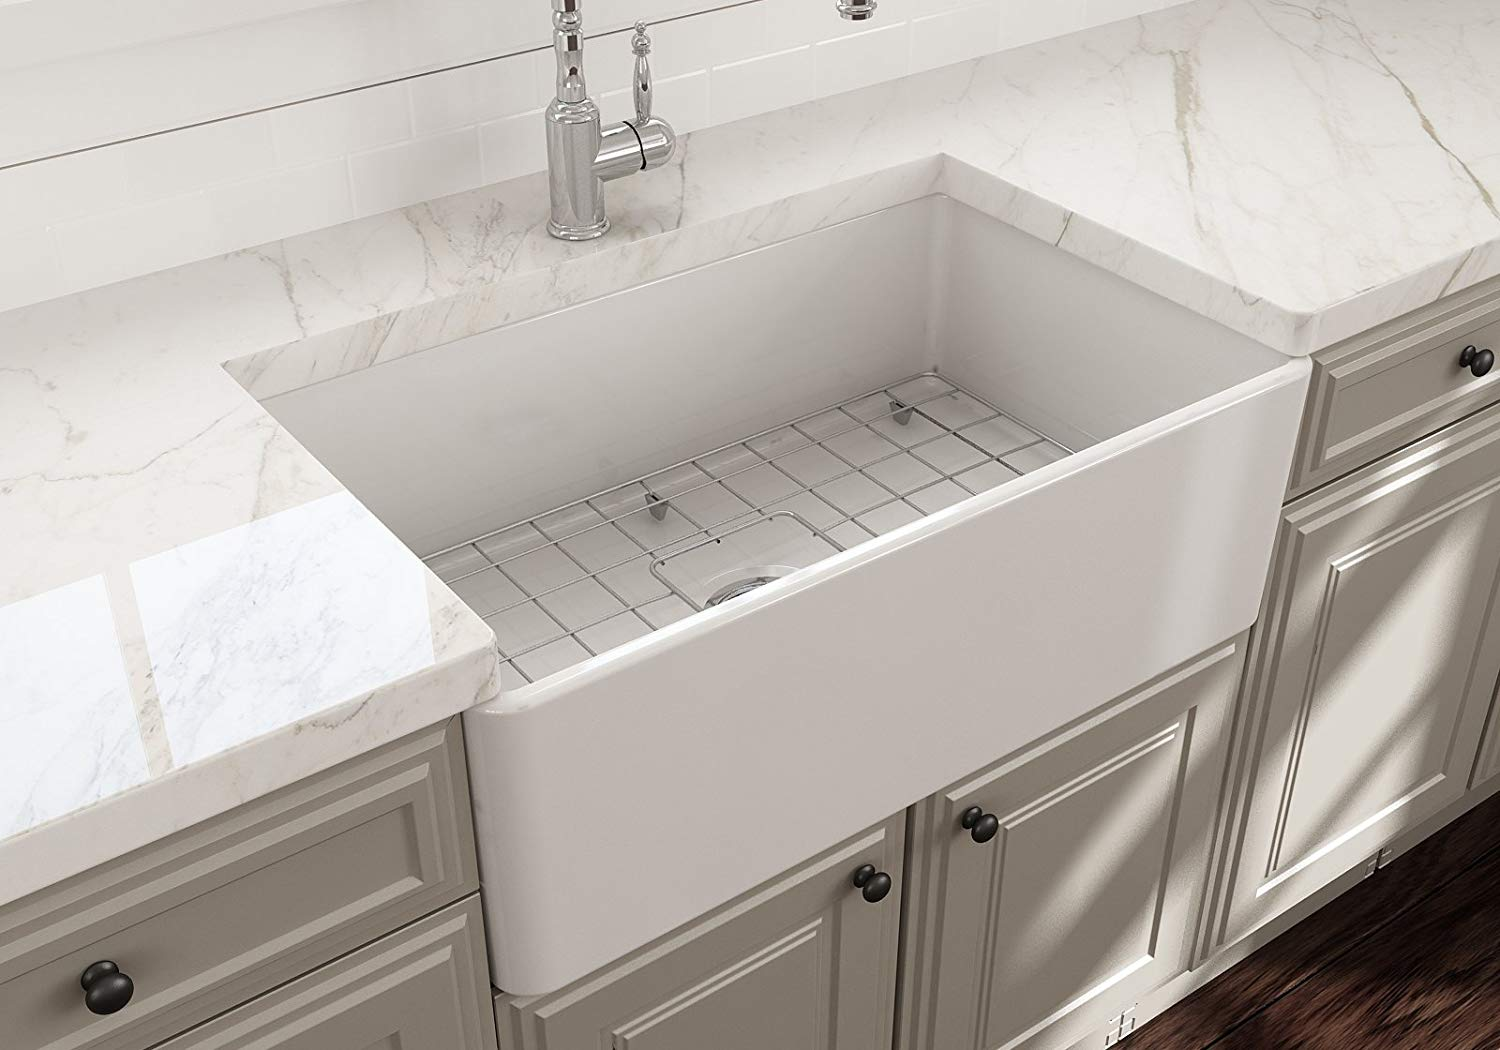 Bocchi Classico Apron Front Fireclay Sink (installed view)